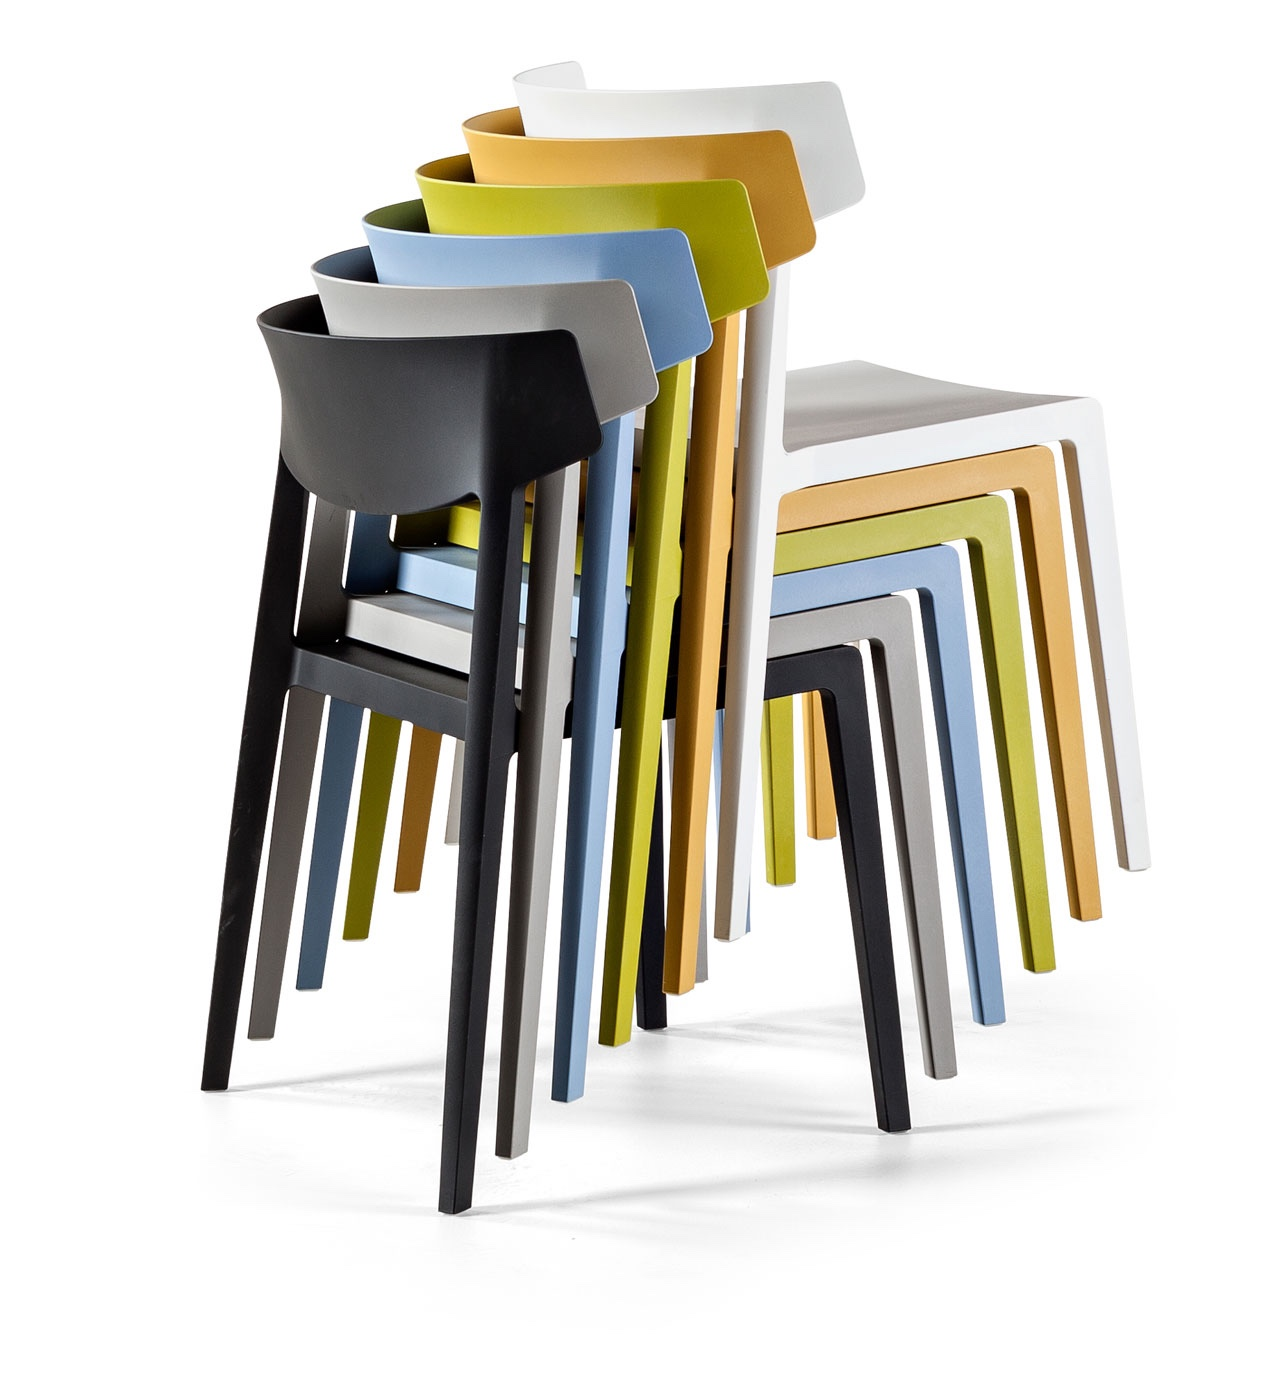 Wing chairs stacked